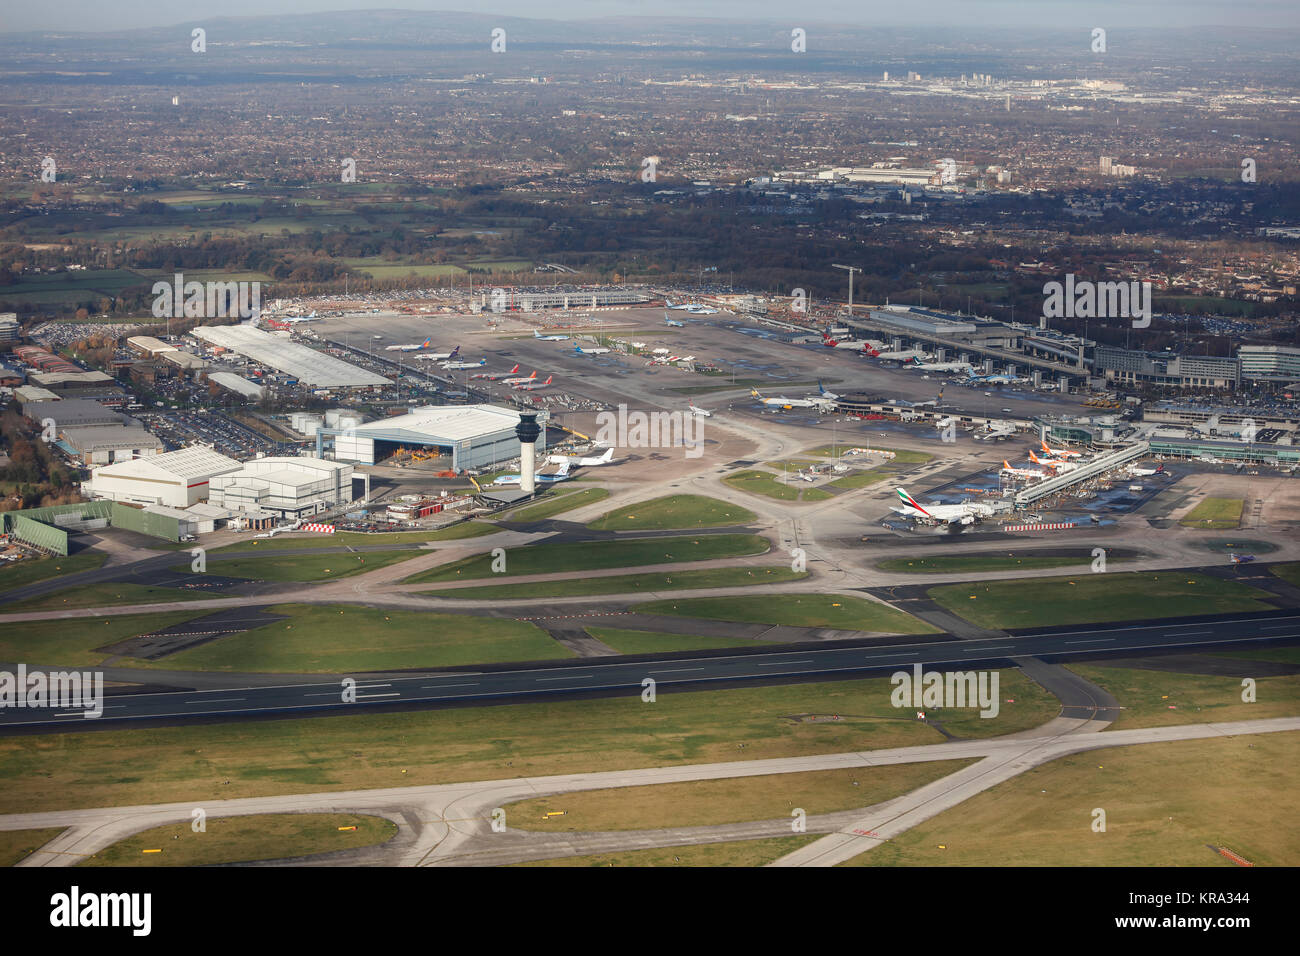 An aerial view showing hangars, the control tower, aprons and terminals of Manchester Airport. - Stock Image